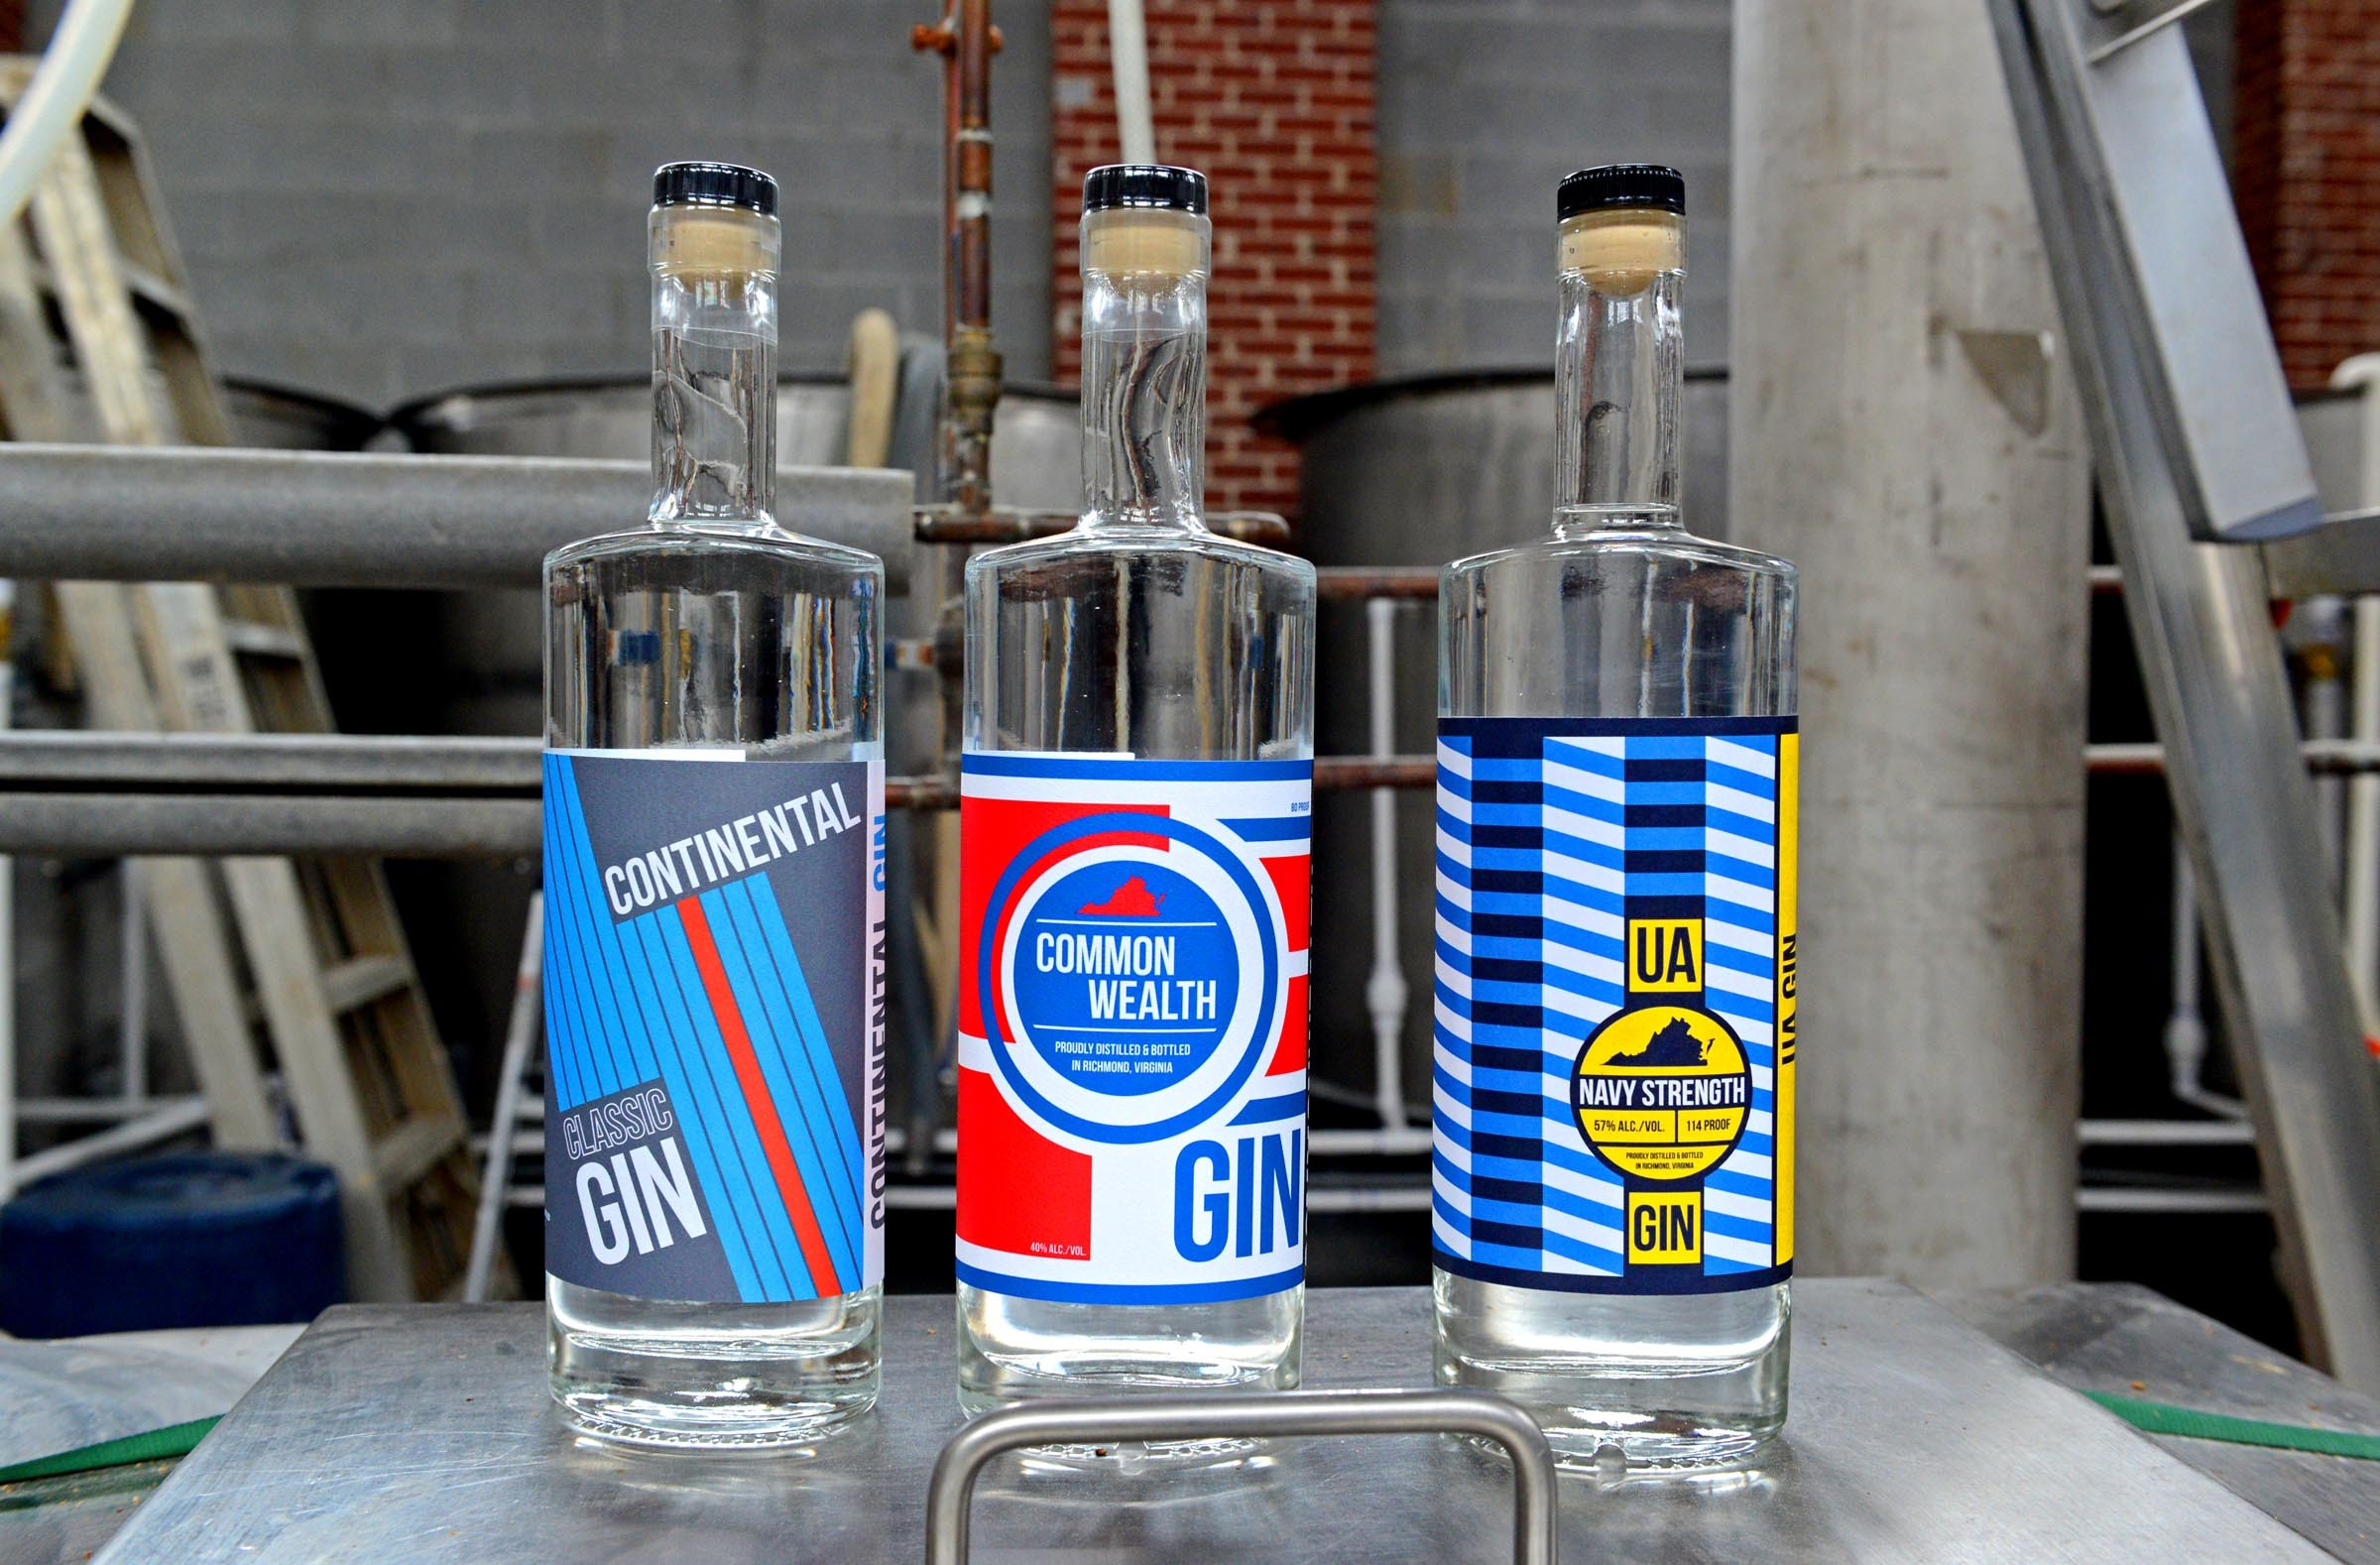 James River Distillery's three kinds of gin include Continental, a dry London-style variety; Commonwealth, infused with hops and botanicals; and Navy Strength, an overproofed spirit that clocks in at 57 percent alcohol but not yet available in Virginia. - SCOTT ELMQUIST